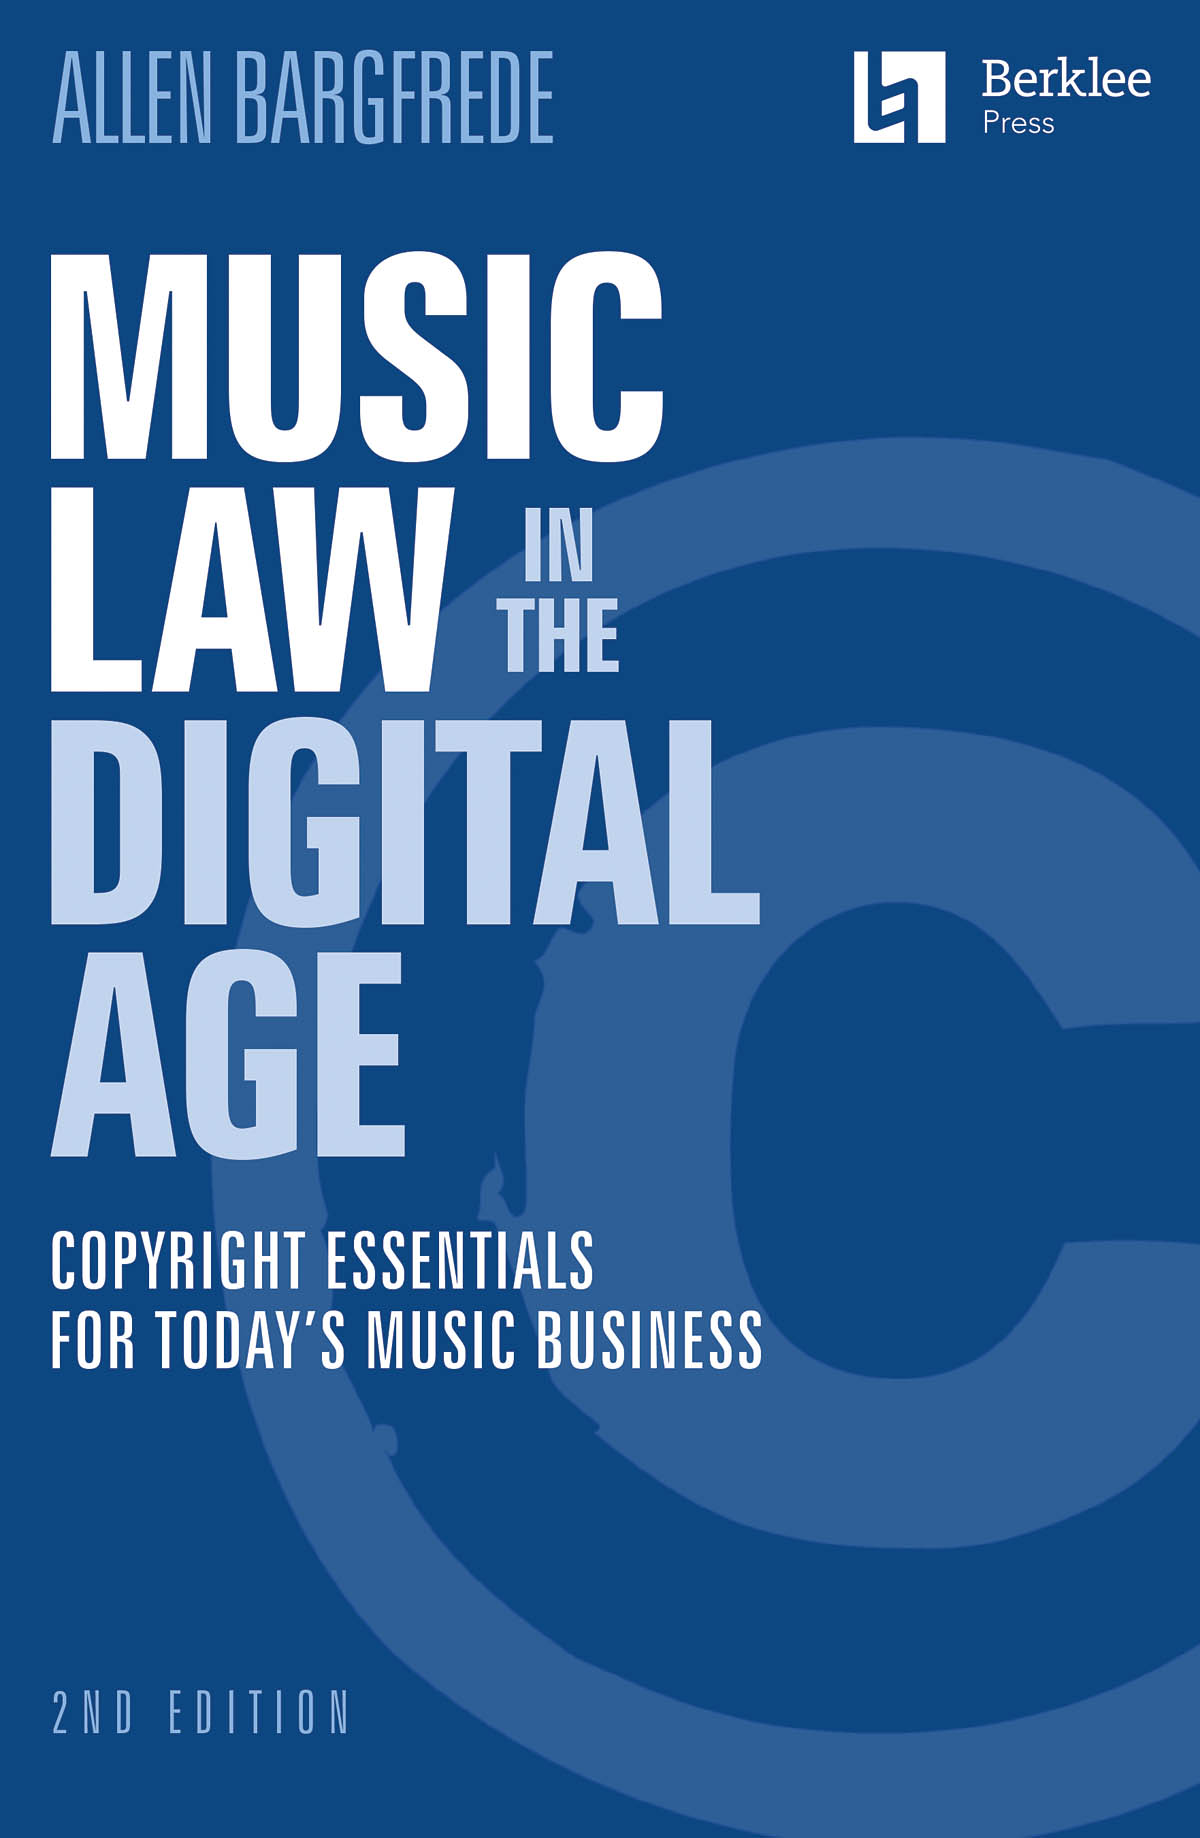 Allen Bargfrede: Music Law in the Digital Age - 2nd Edition: Reference Books: